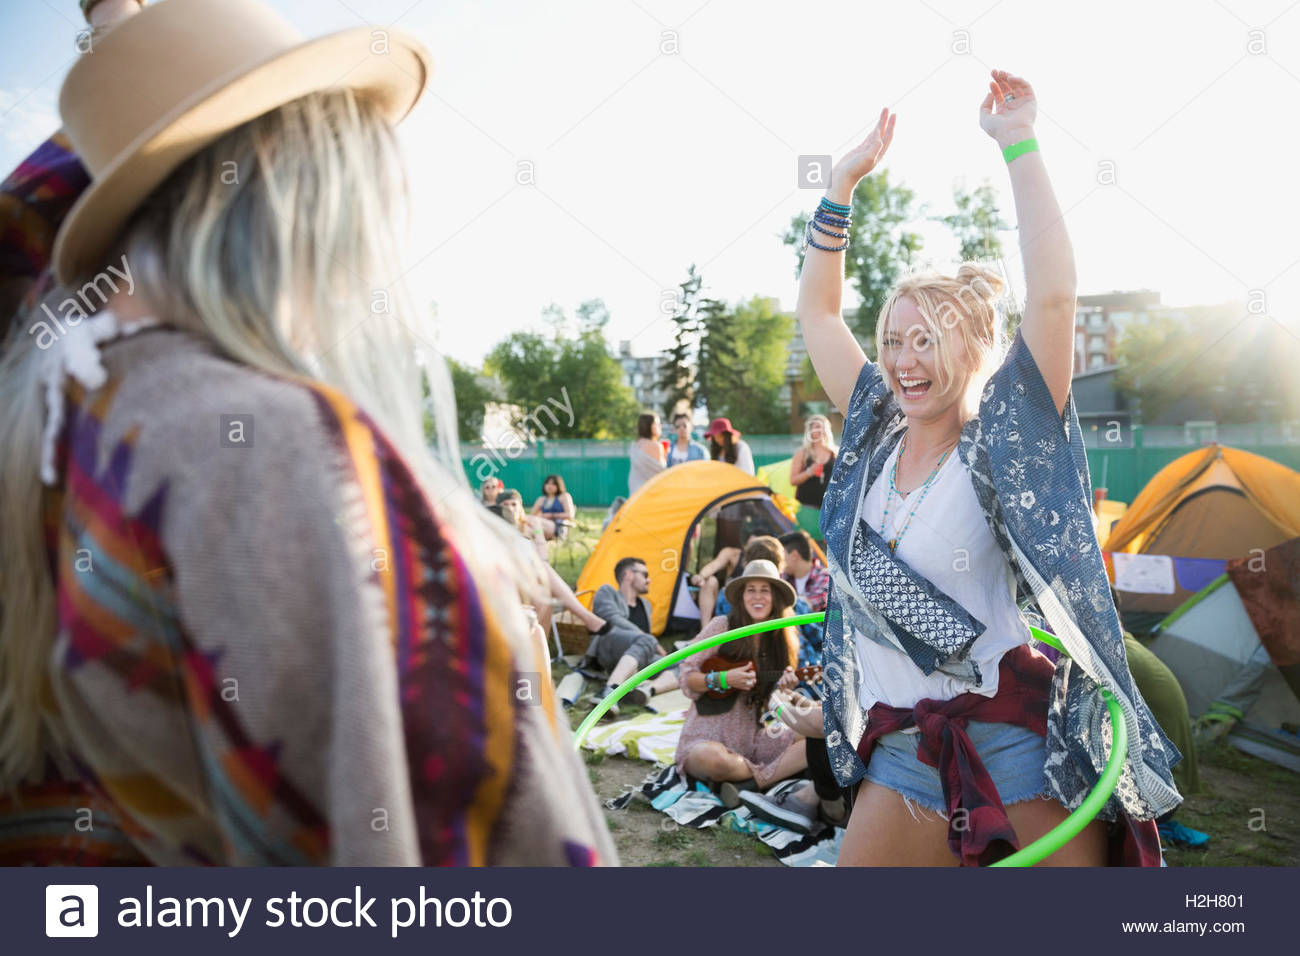 Playful young woman spinning with plastic hoop at summer music festival campsite - Stock Image